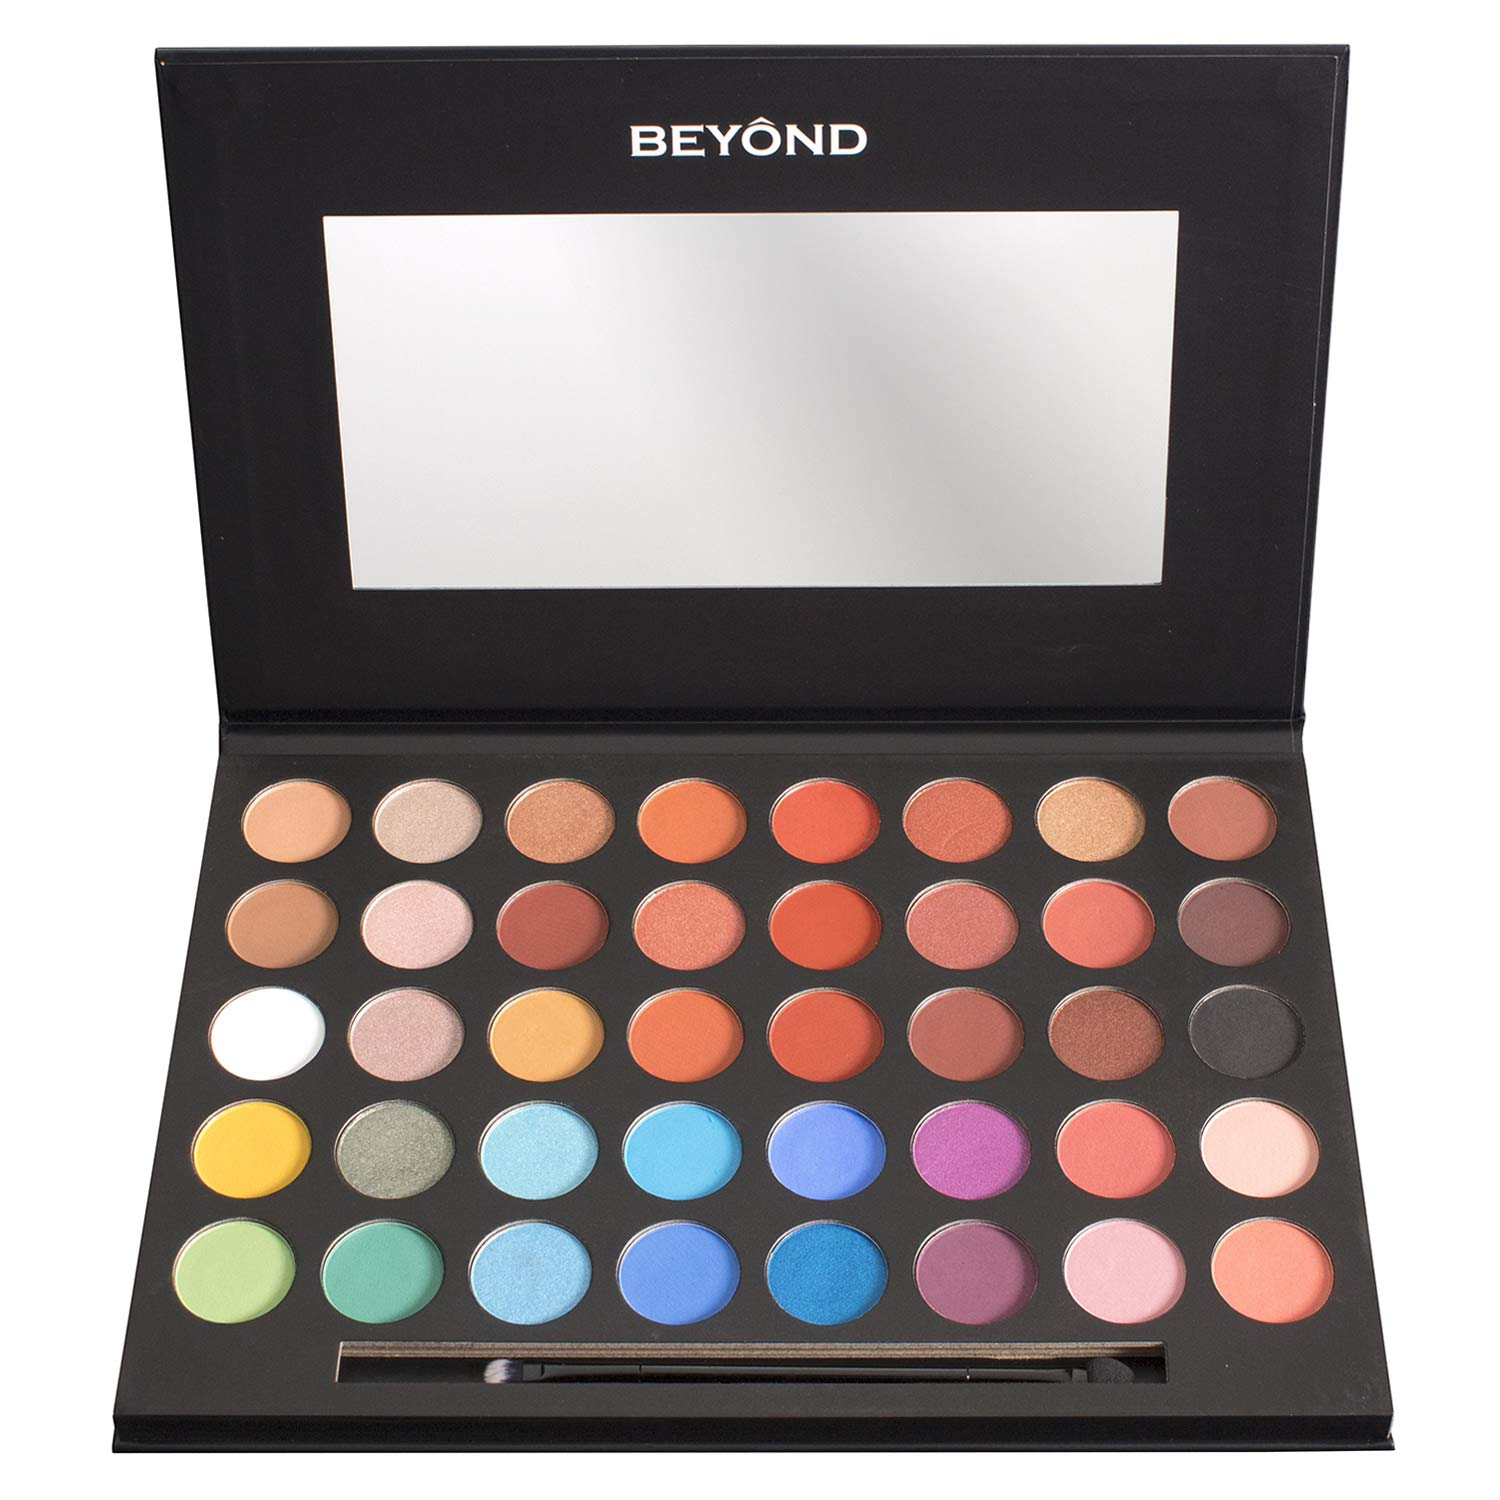 Beyond Everglow 40 Colors Shimmer & Matte Highly Pigmented Professional Eye Shadow Palette Makeup Kit.